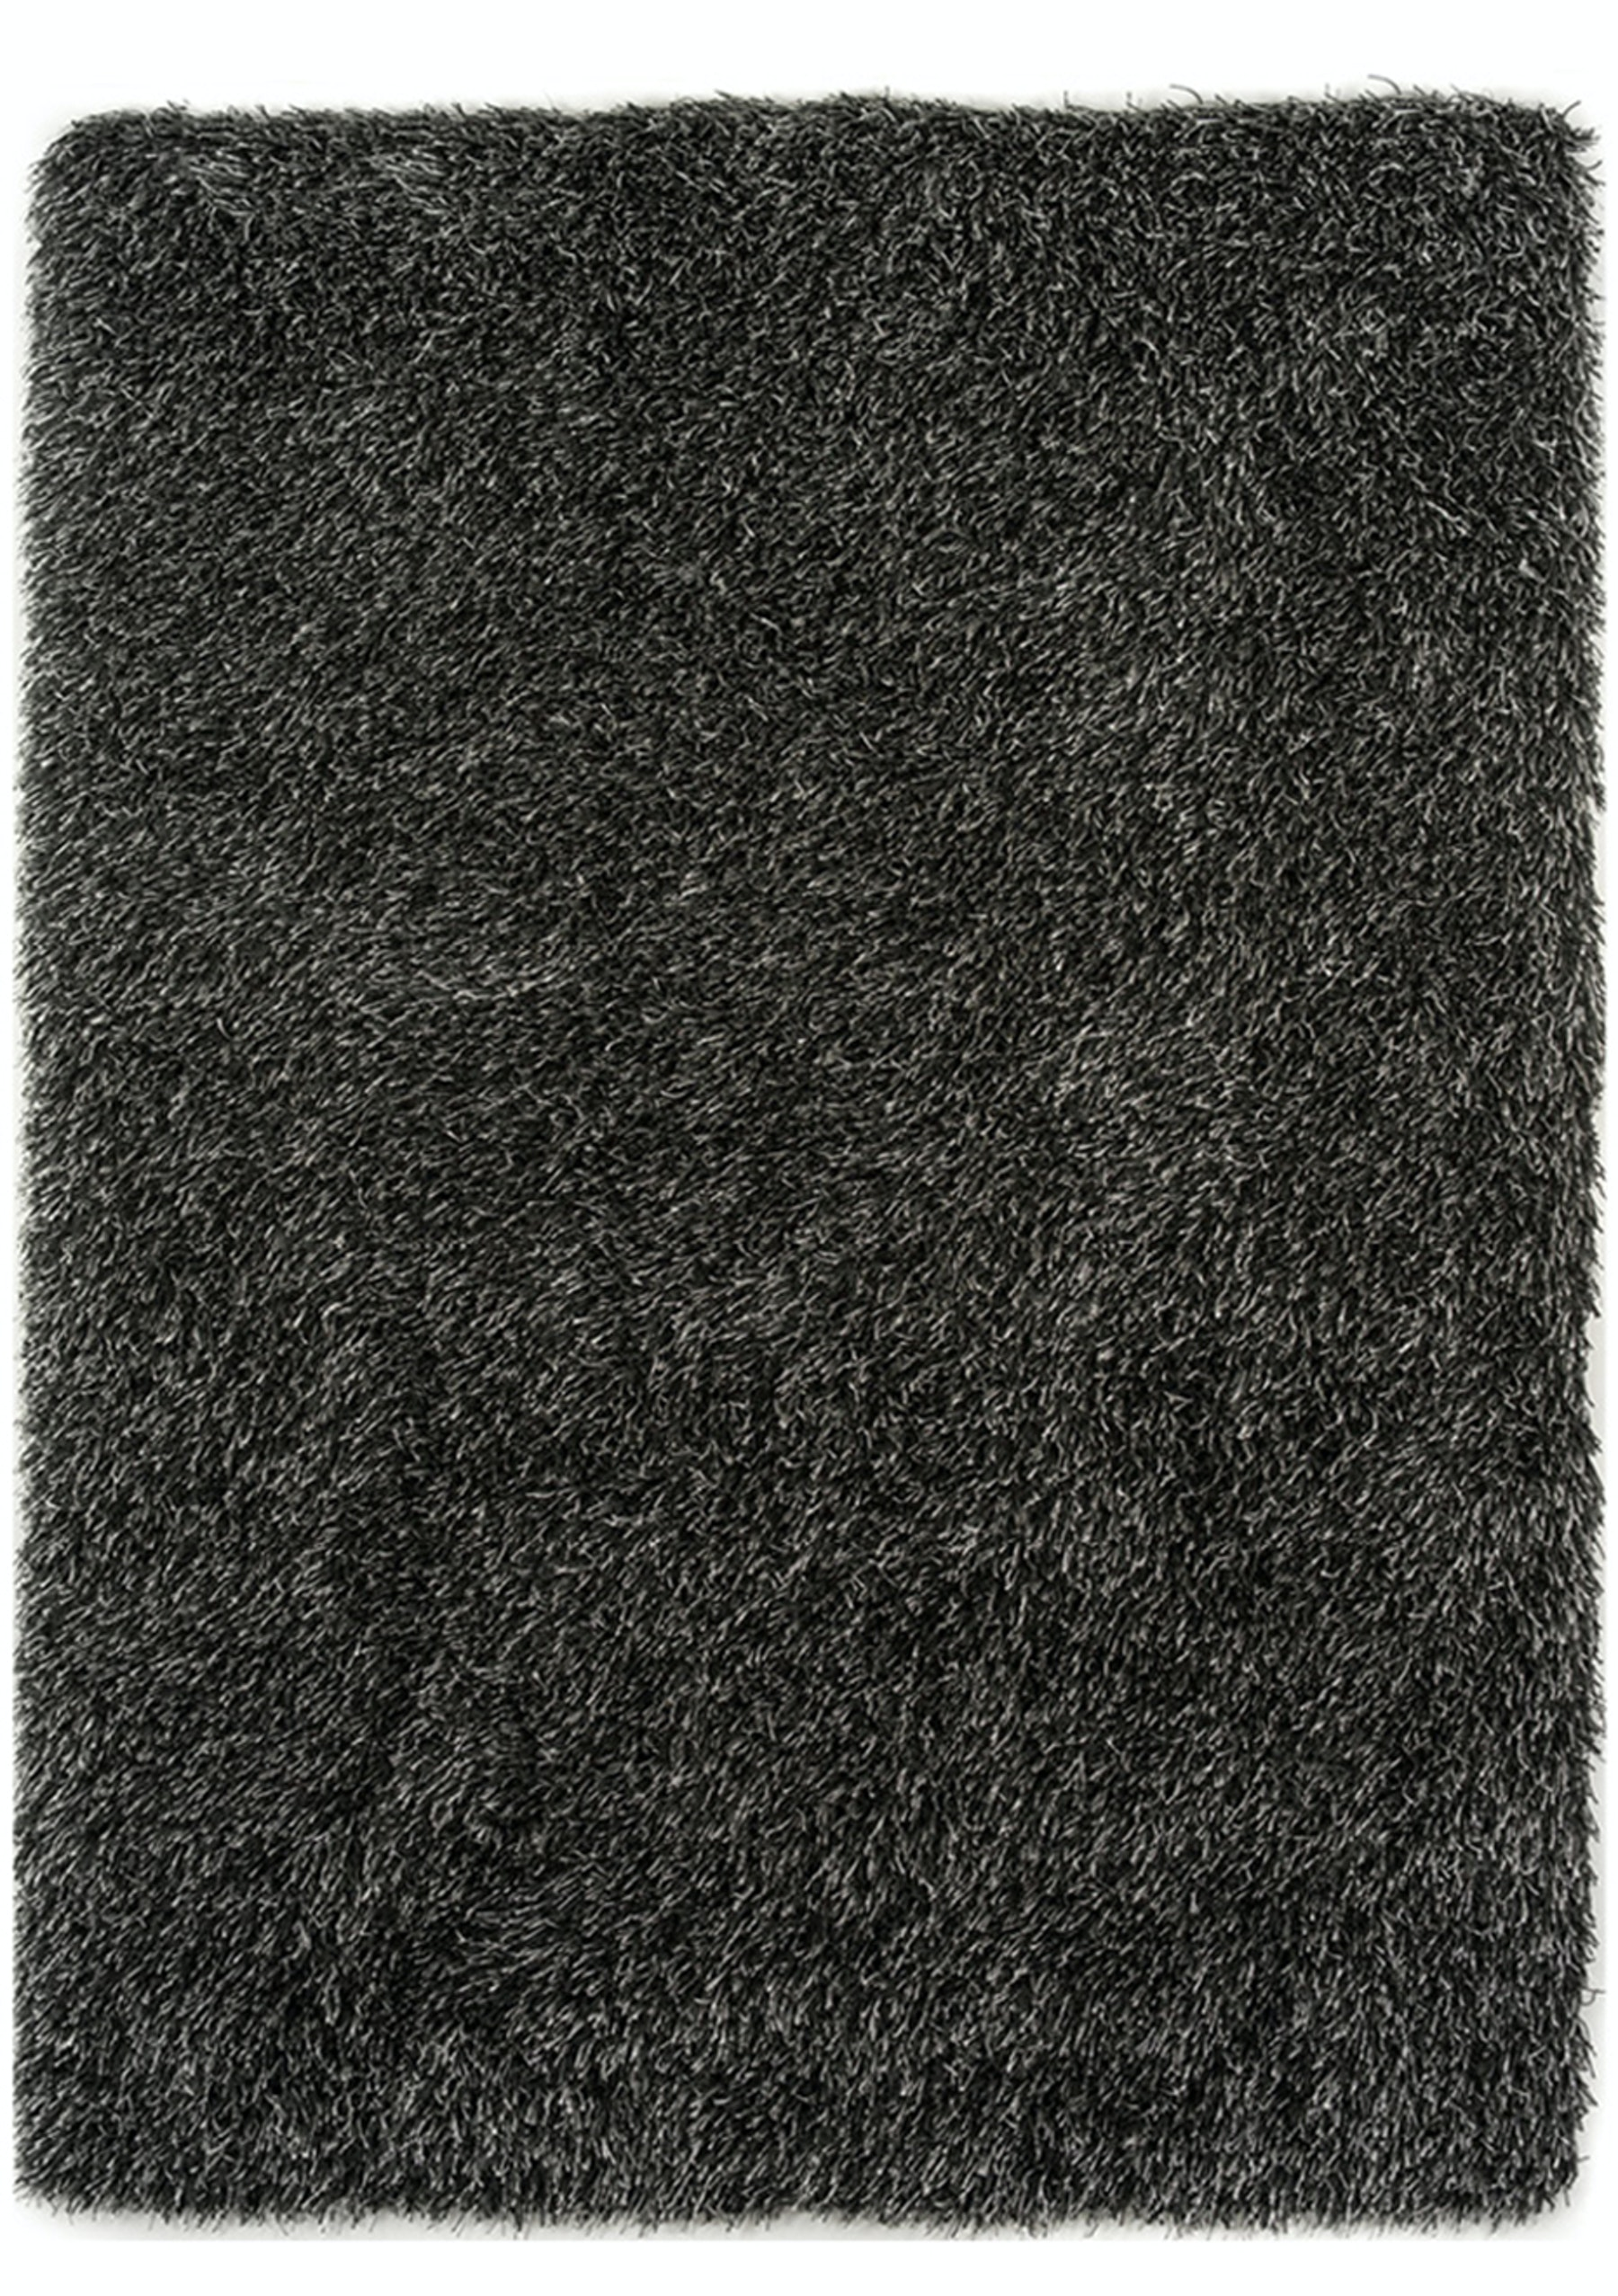 Shaggy Black White 110 X 160 Indoor Amp Outdoor Rugs